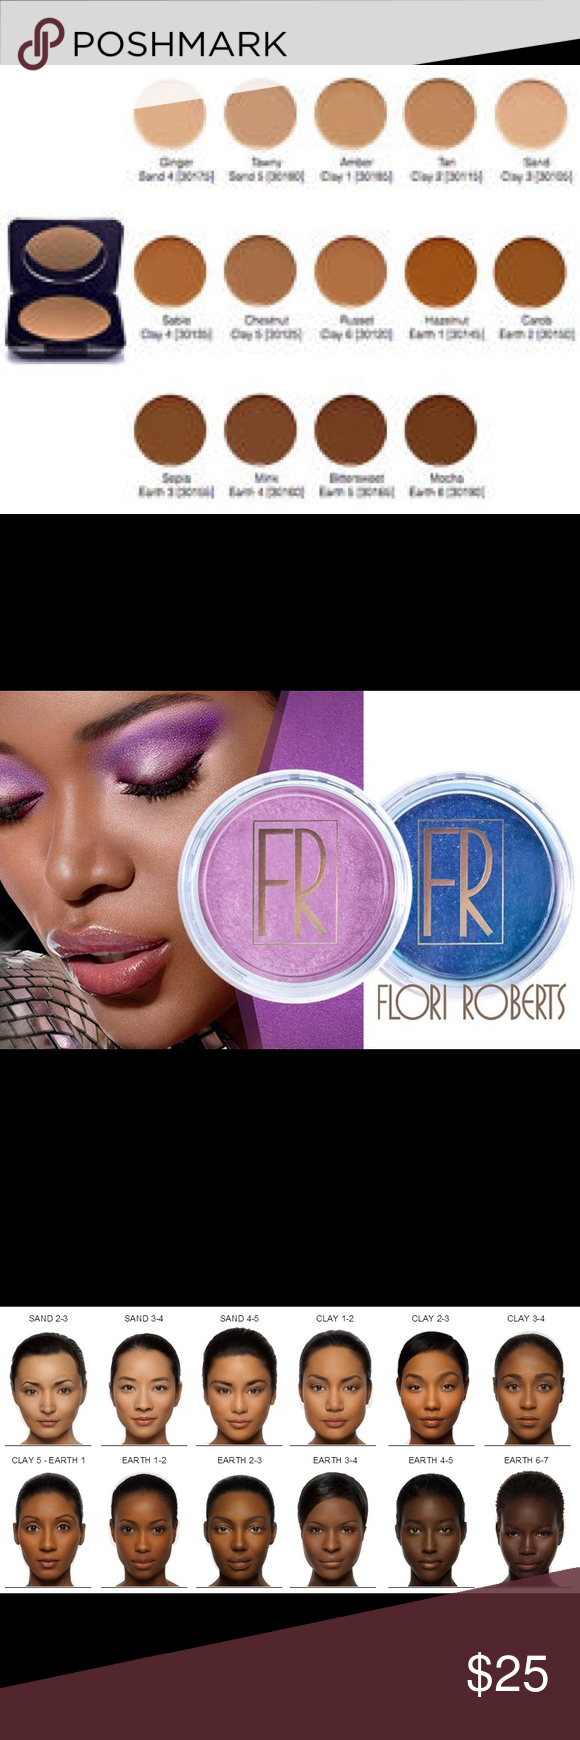 Flori Roberts Cream to Power Foundation all shades NWT